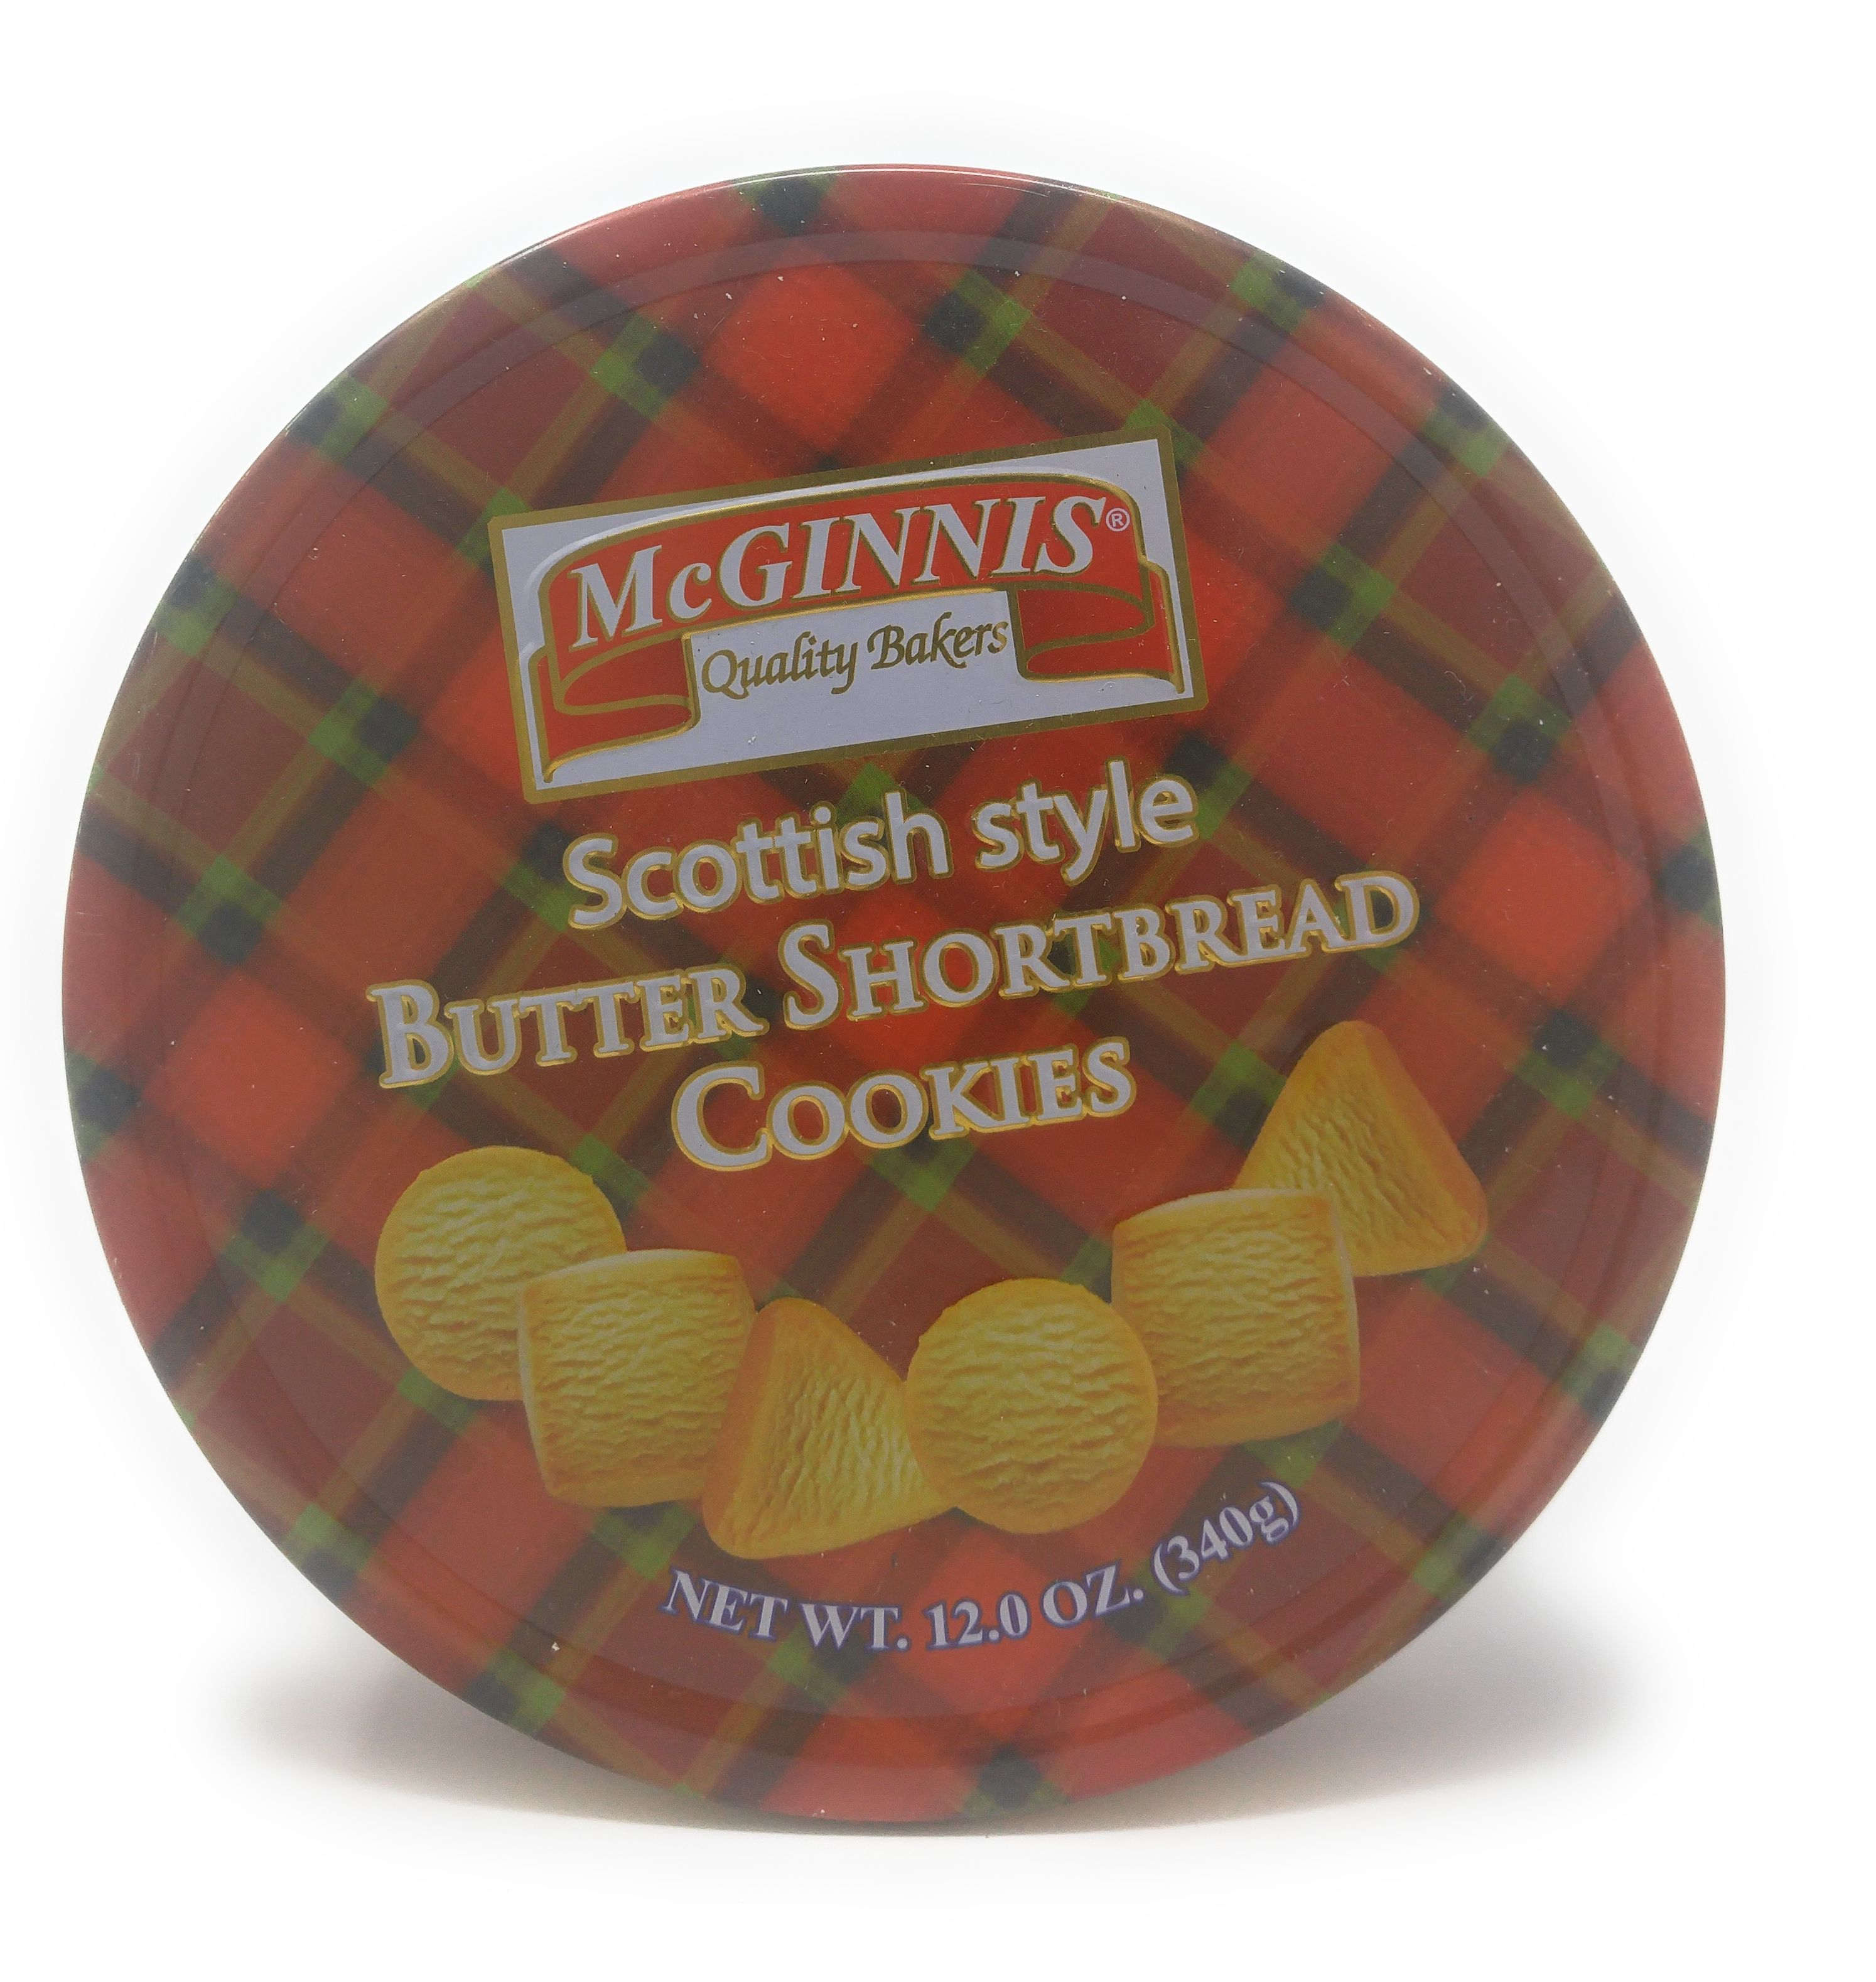 McGinnis Scottish Sytle Butter Shortbread Cookies (12 Oz.) 40 Cookies by Allied Internation Foods